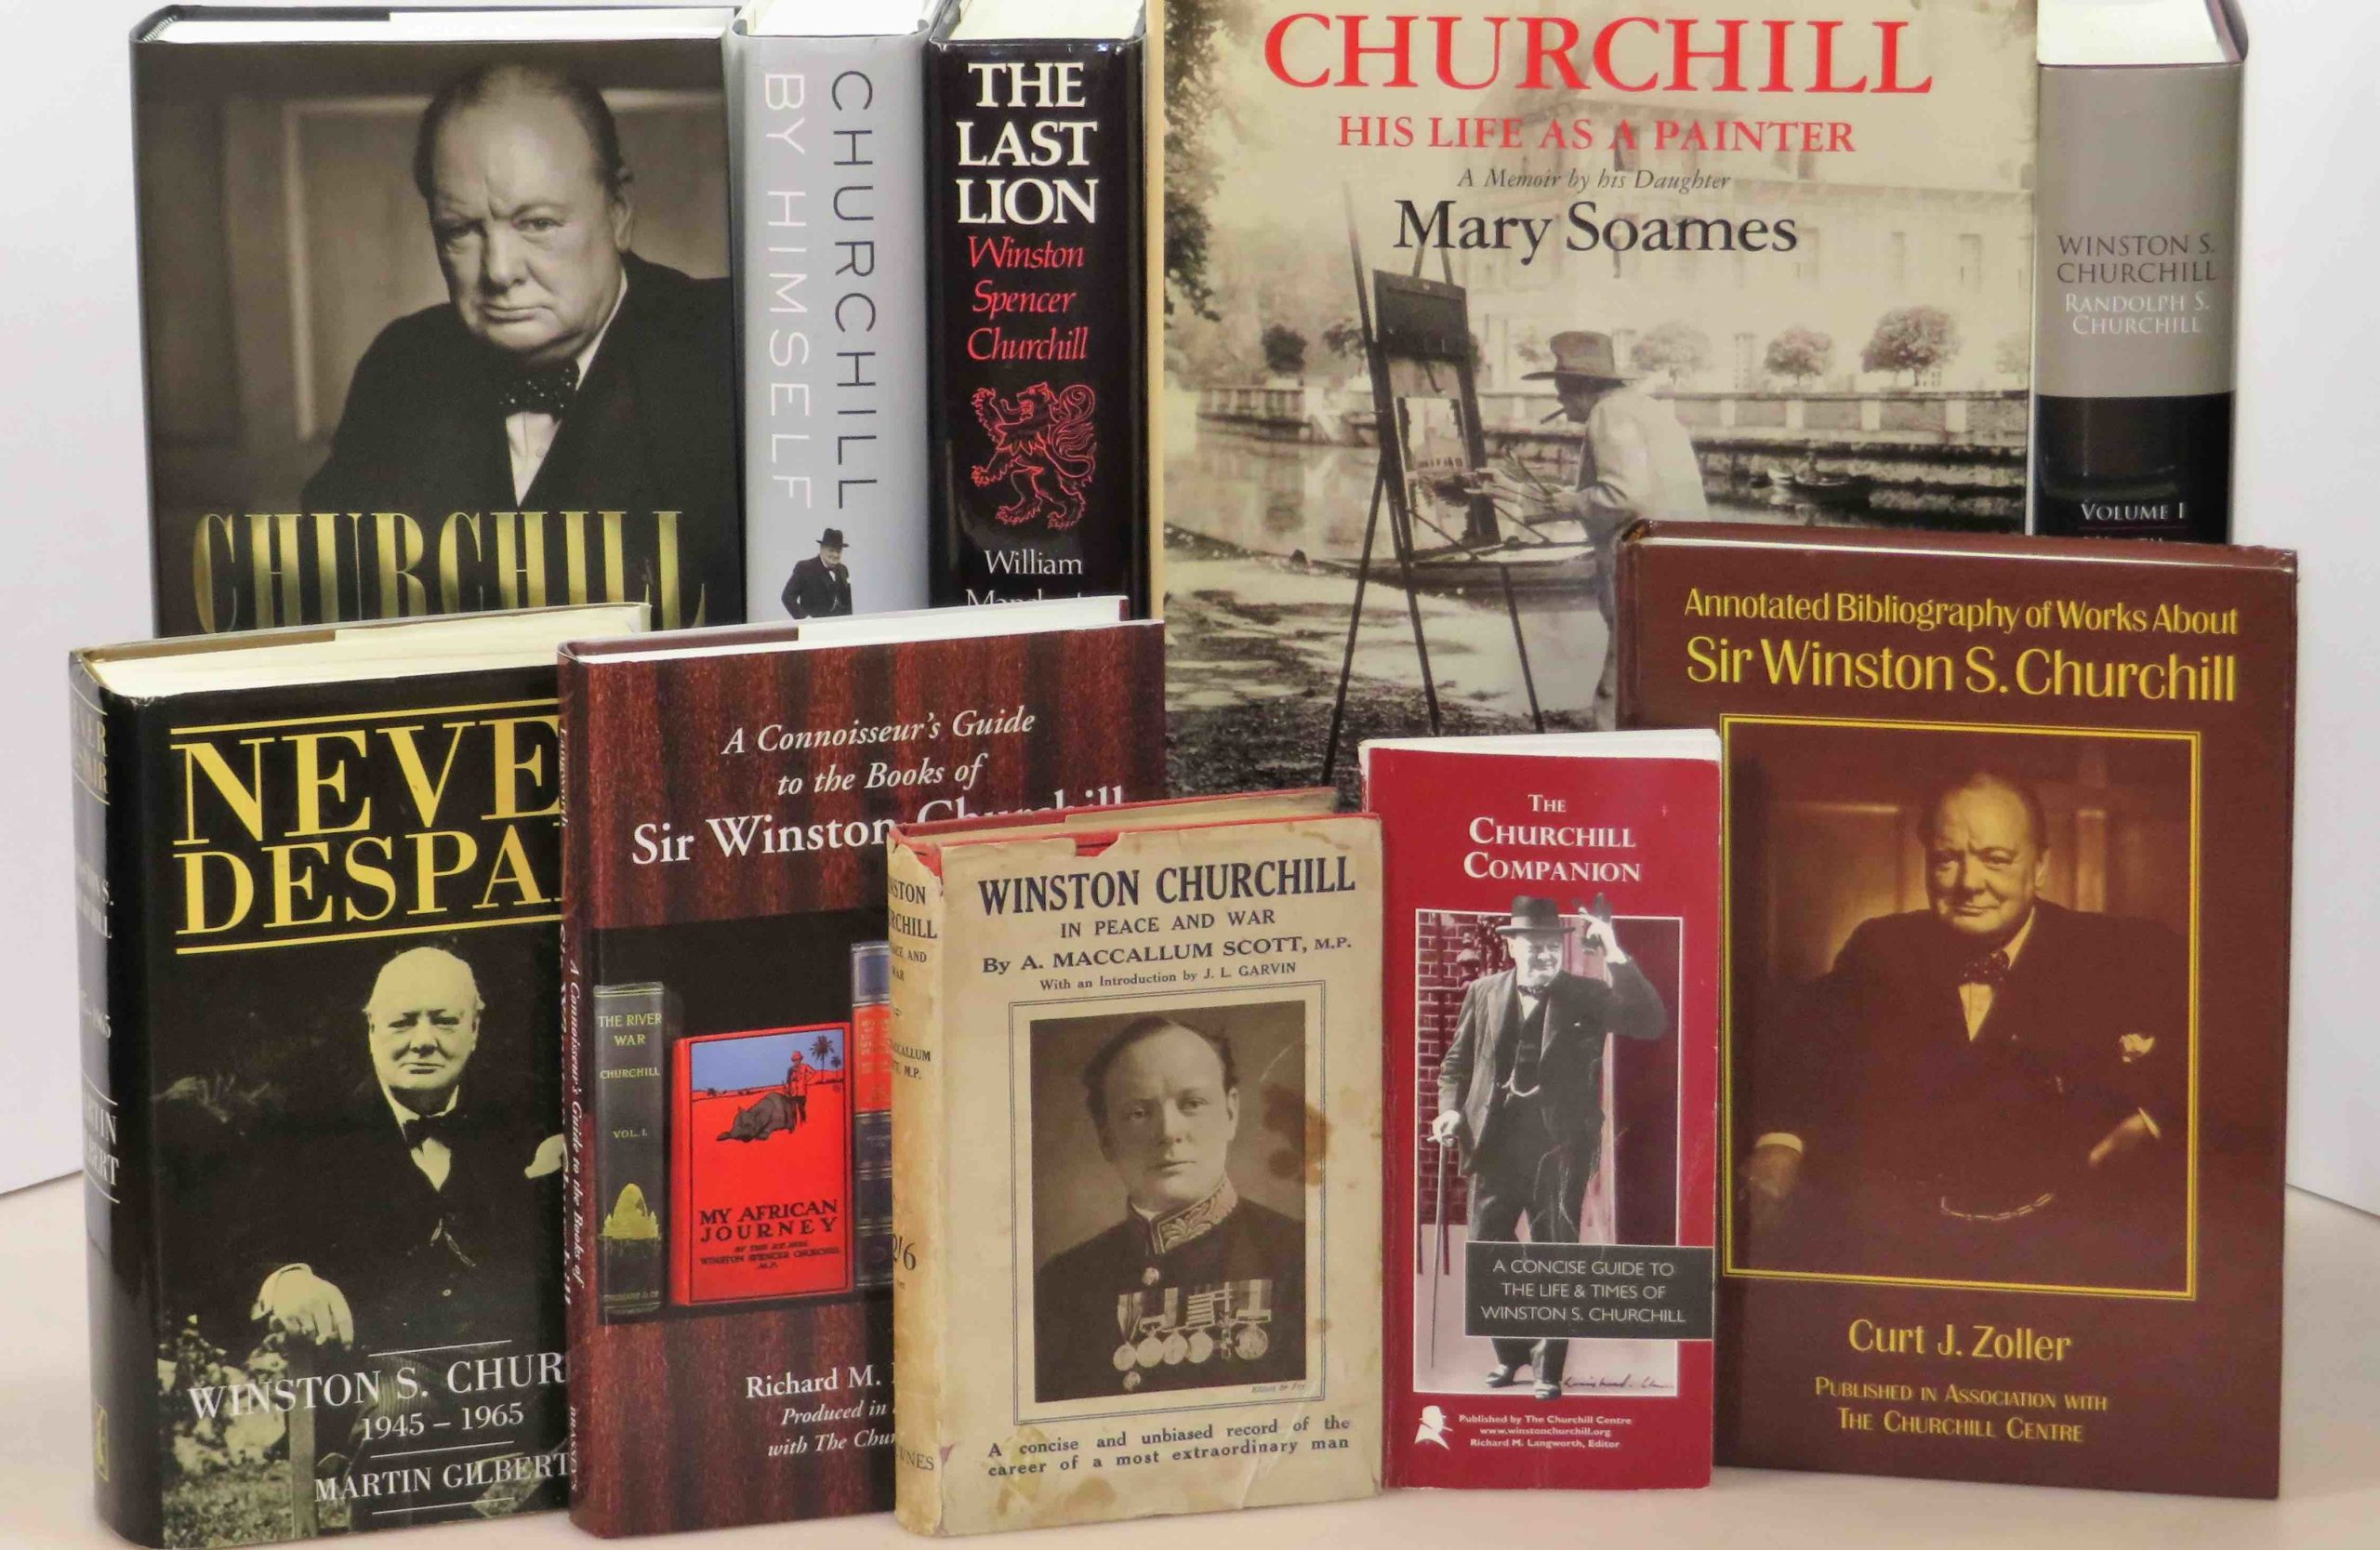 1100 Titles An Annotated Bibliography Of Works About Winston Churchill